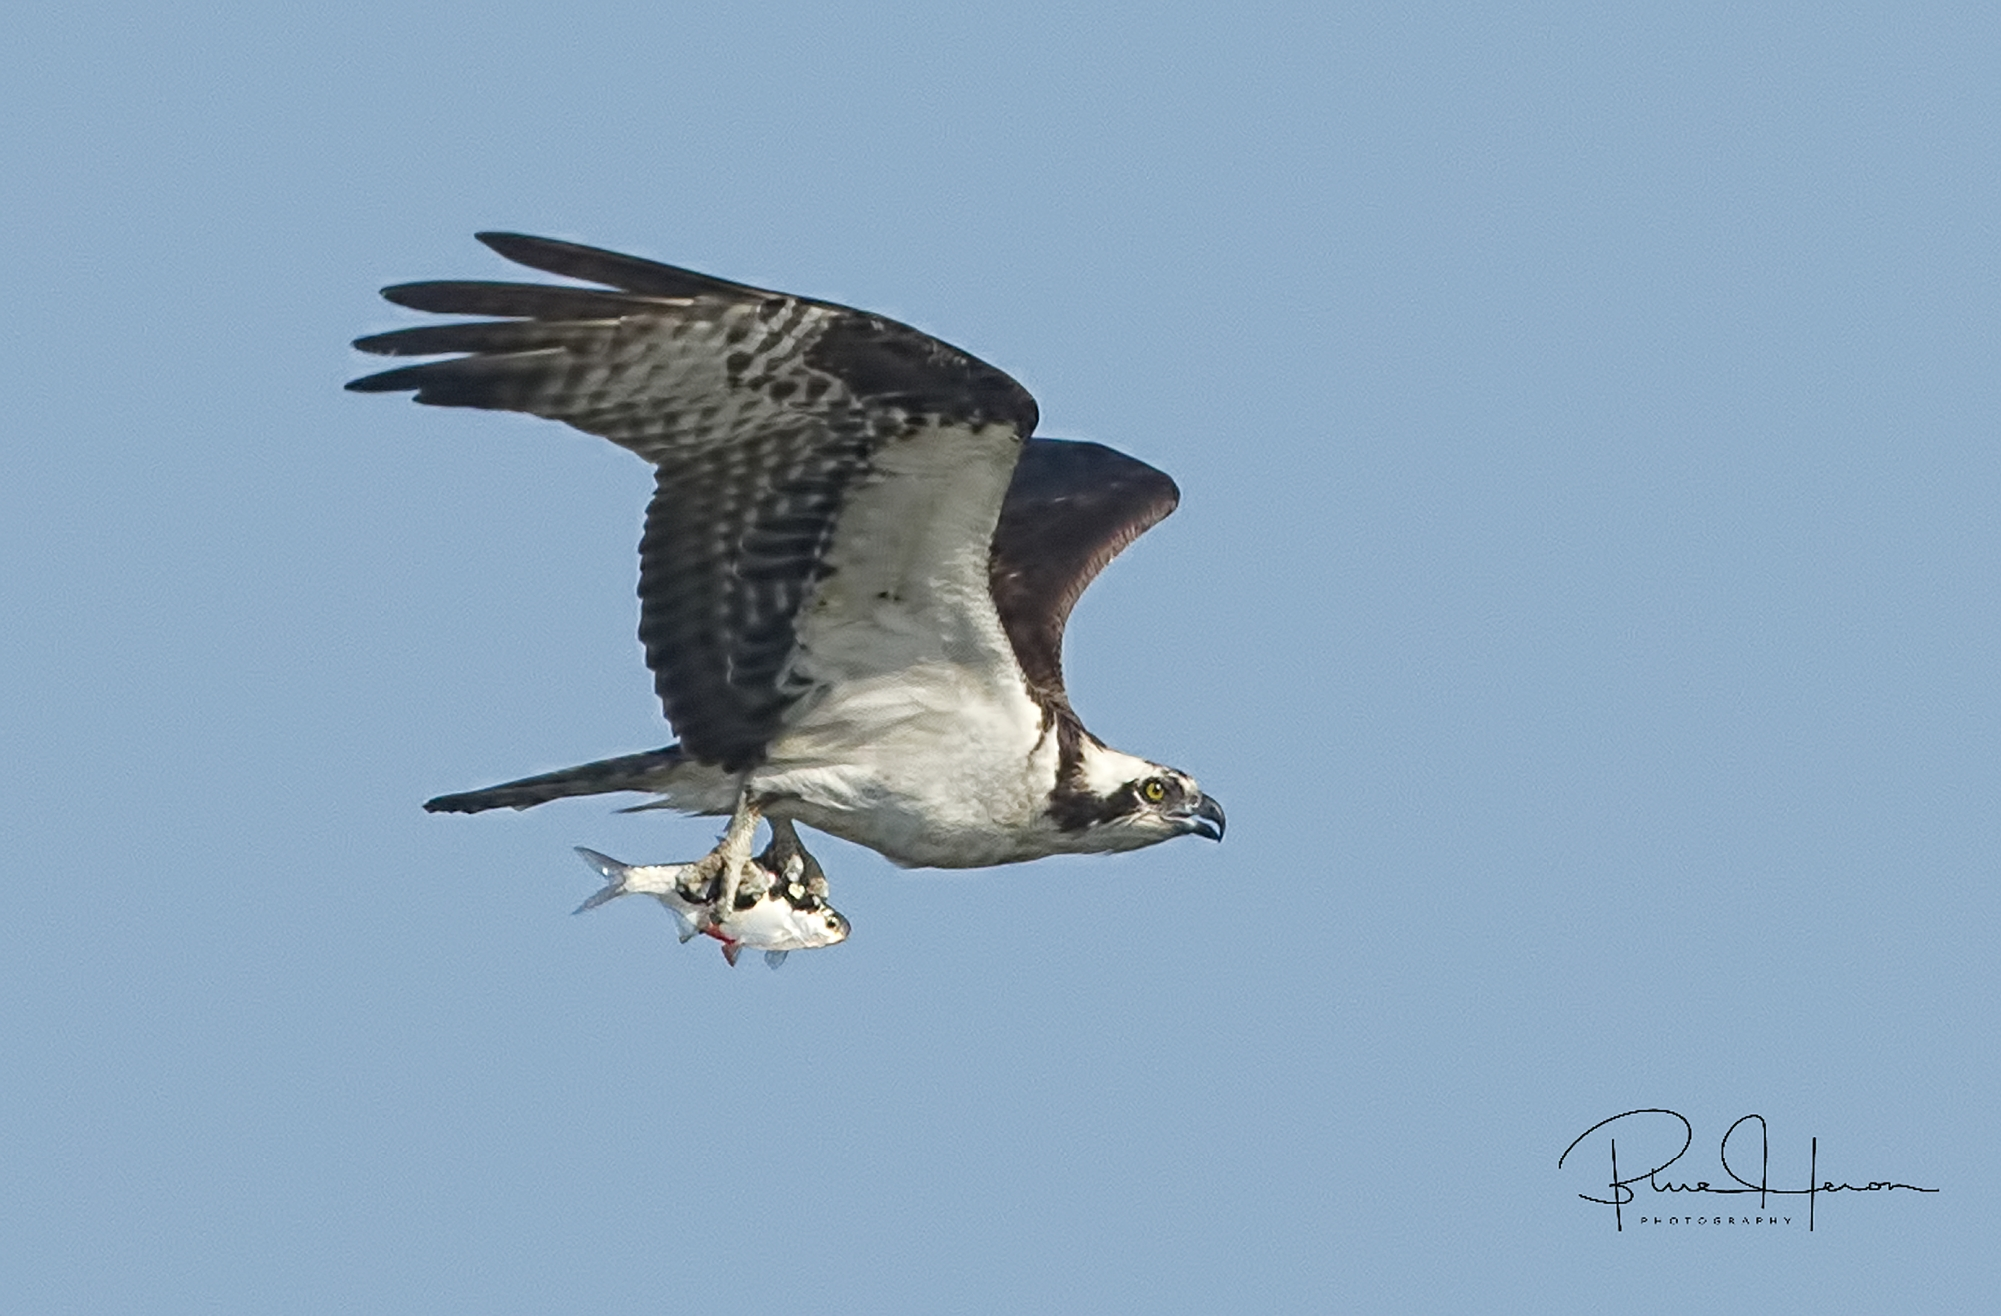 The Osprey is having a Shad Sandwich too!.....hmmm..gives me an idea but I digress